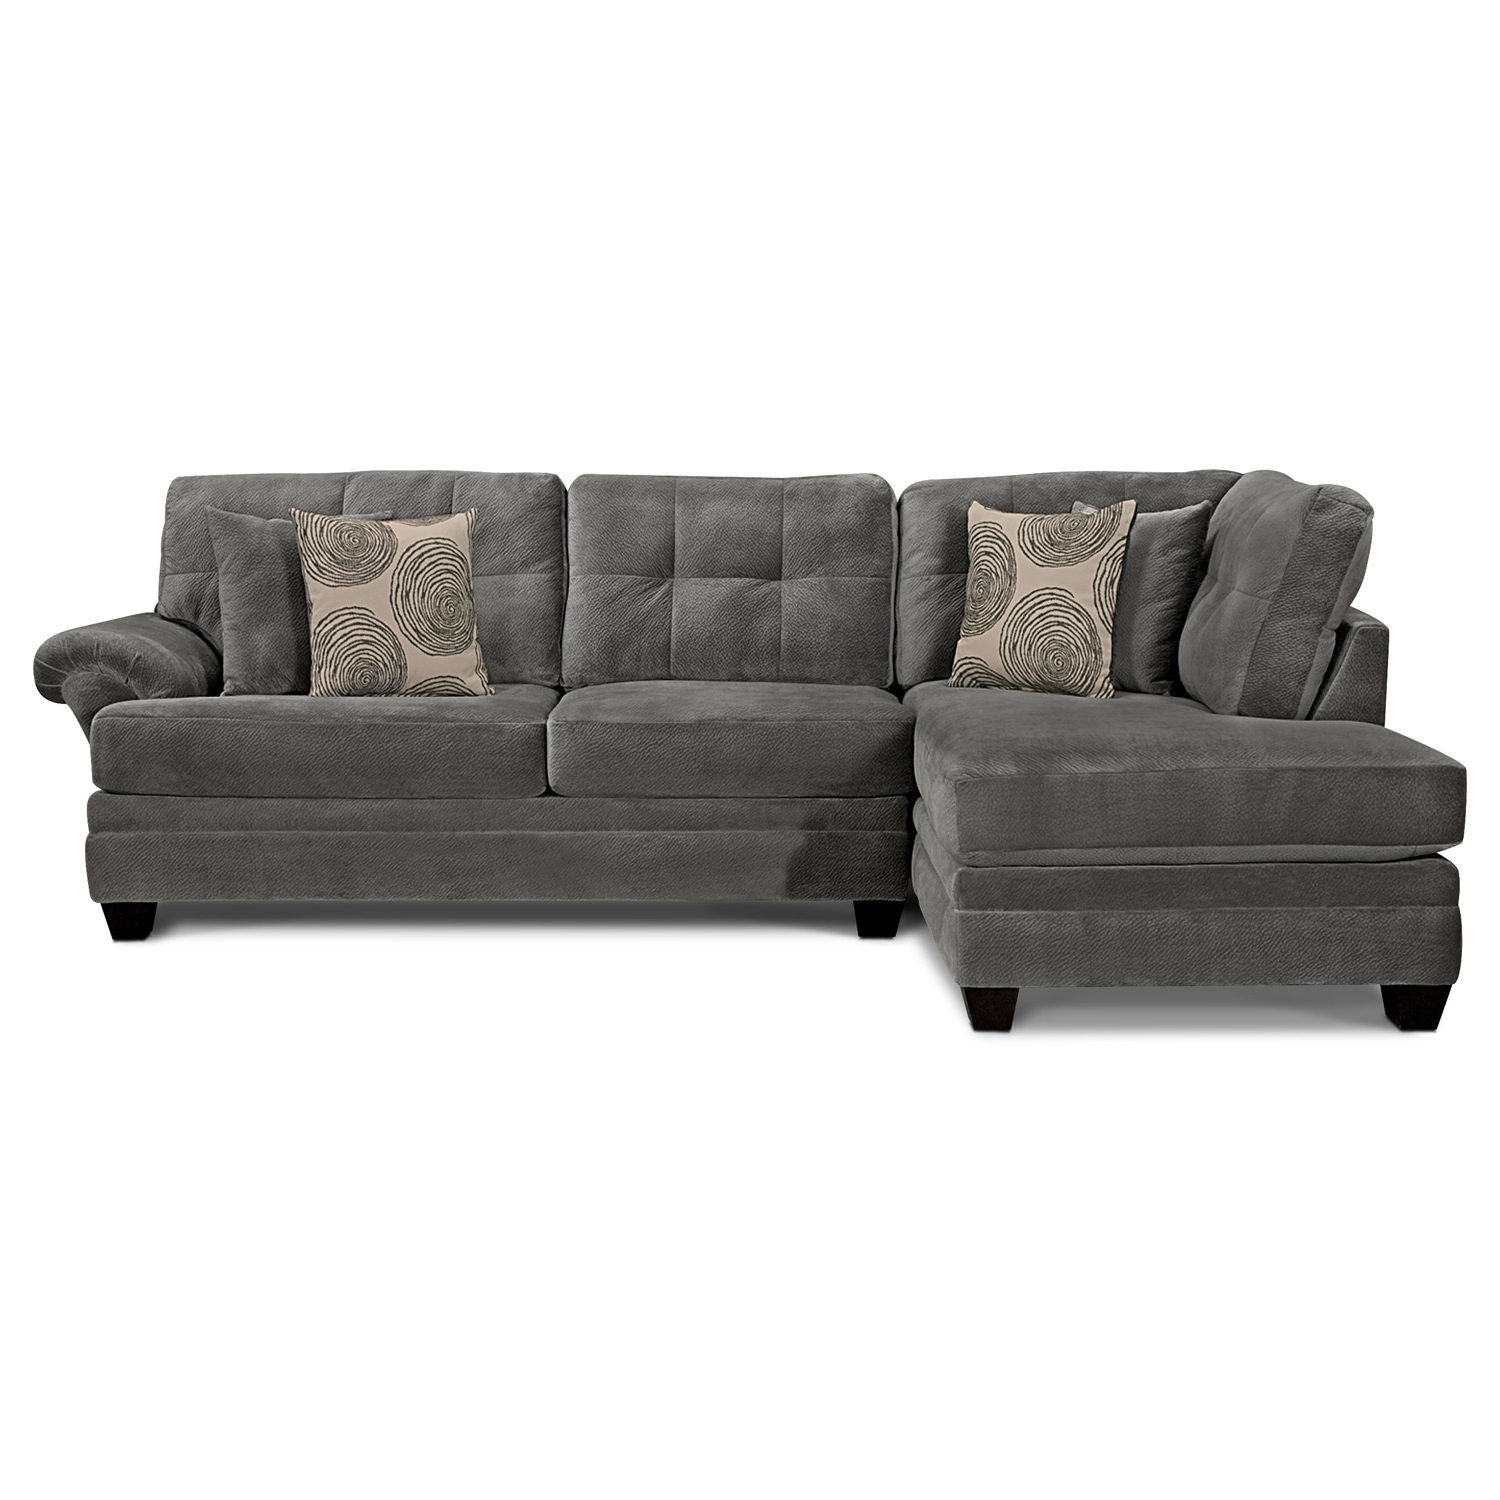 Cordelle 2 Piece Sectional With Chaise (View 15 of 20)